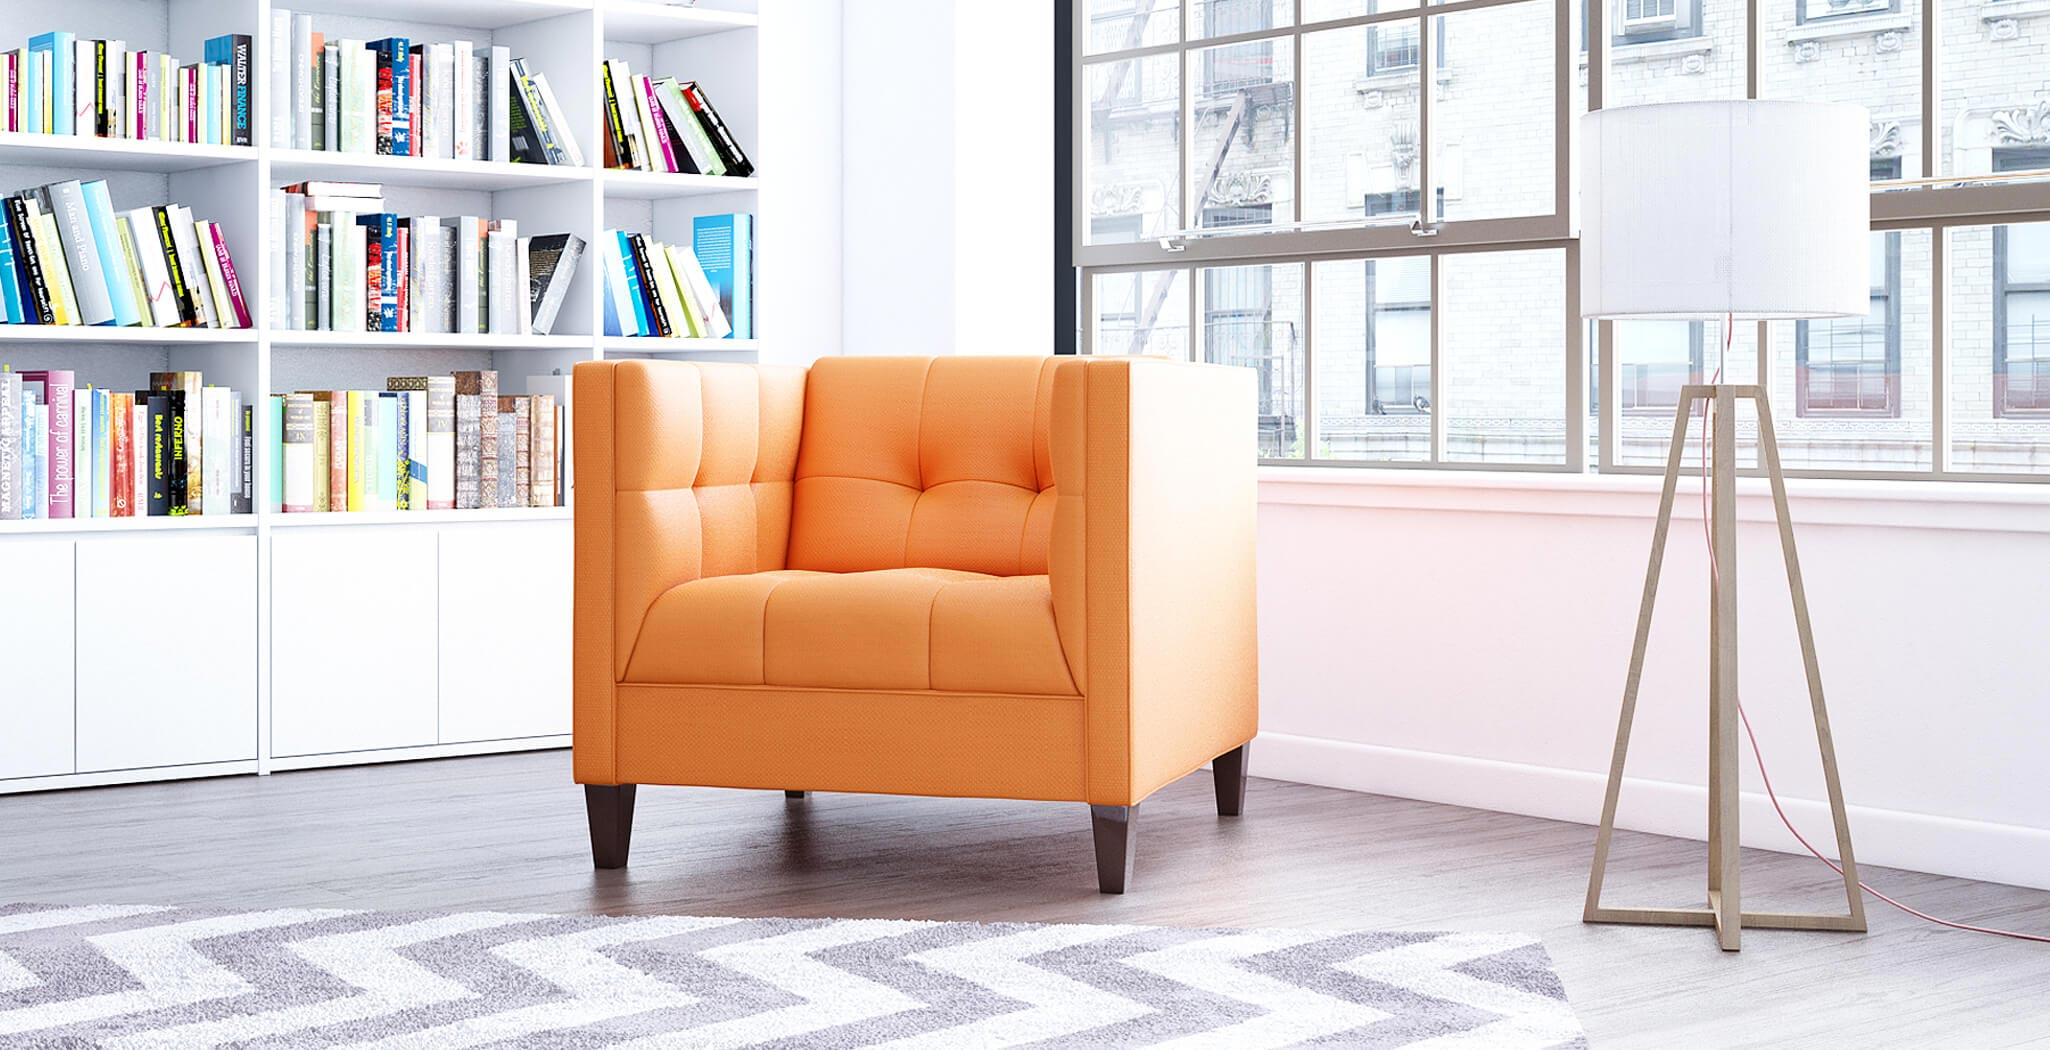 messina chair furniture gallery 1